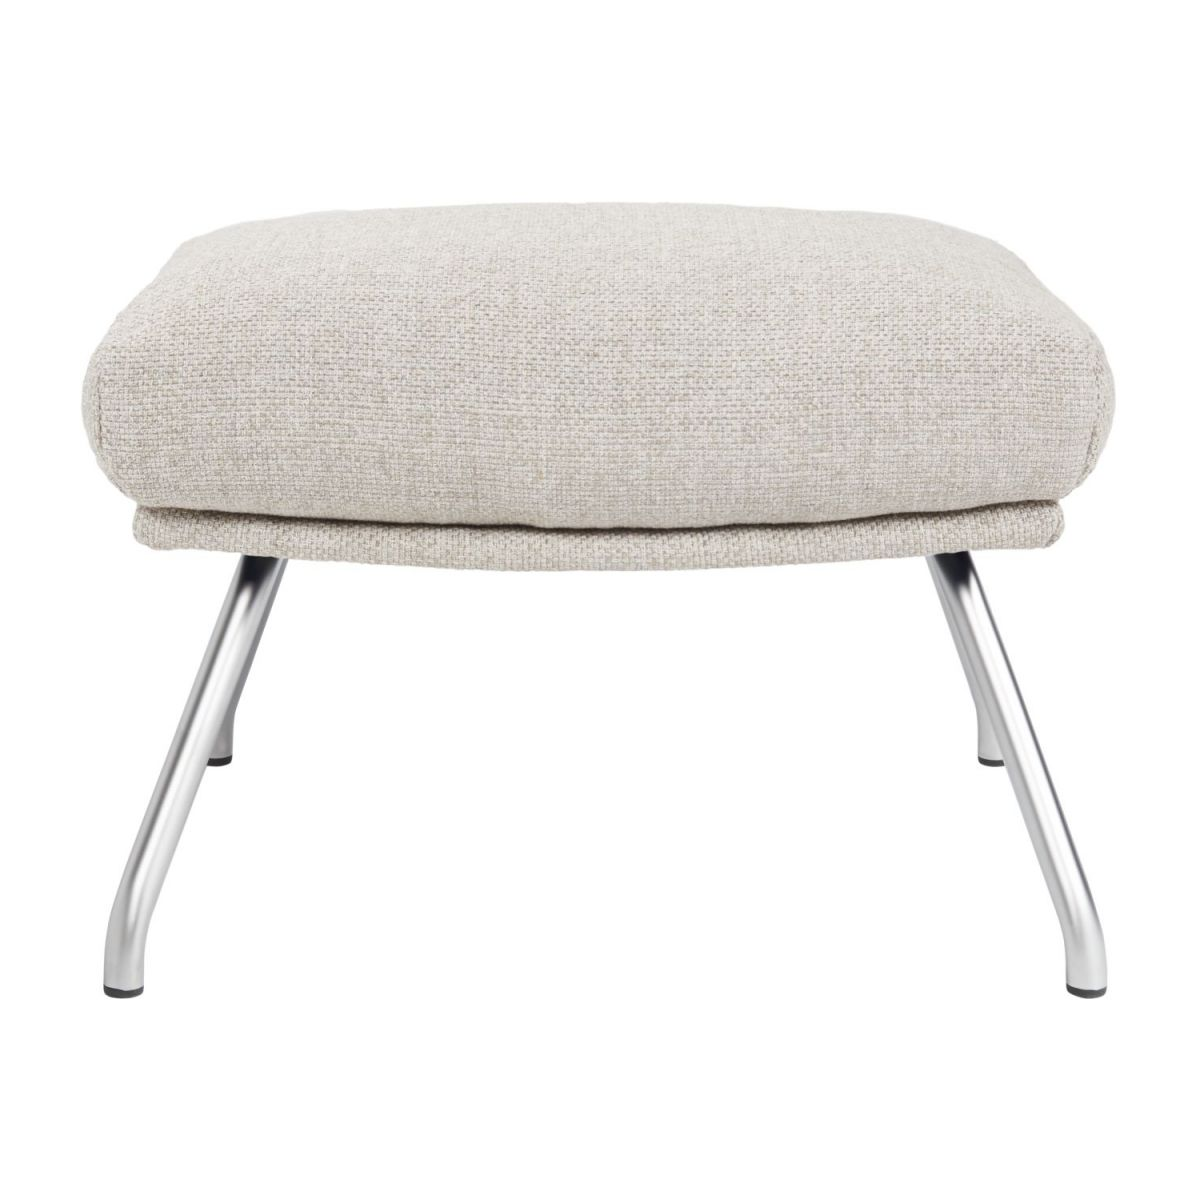 Footstool in Lecce fabric, nature with matt metal legs n°2